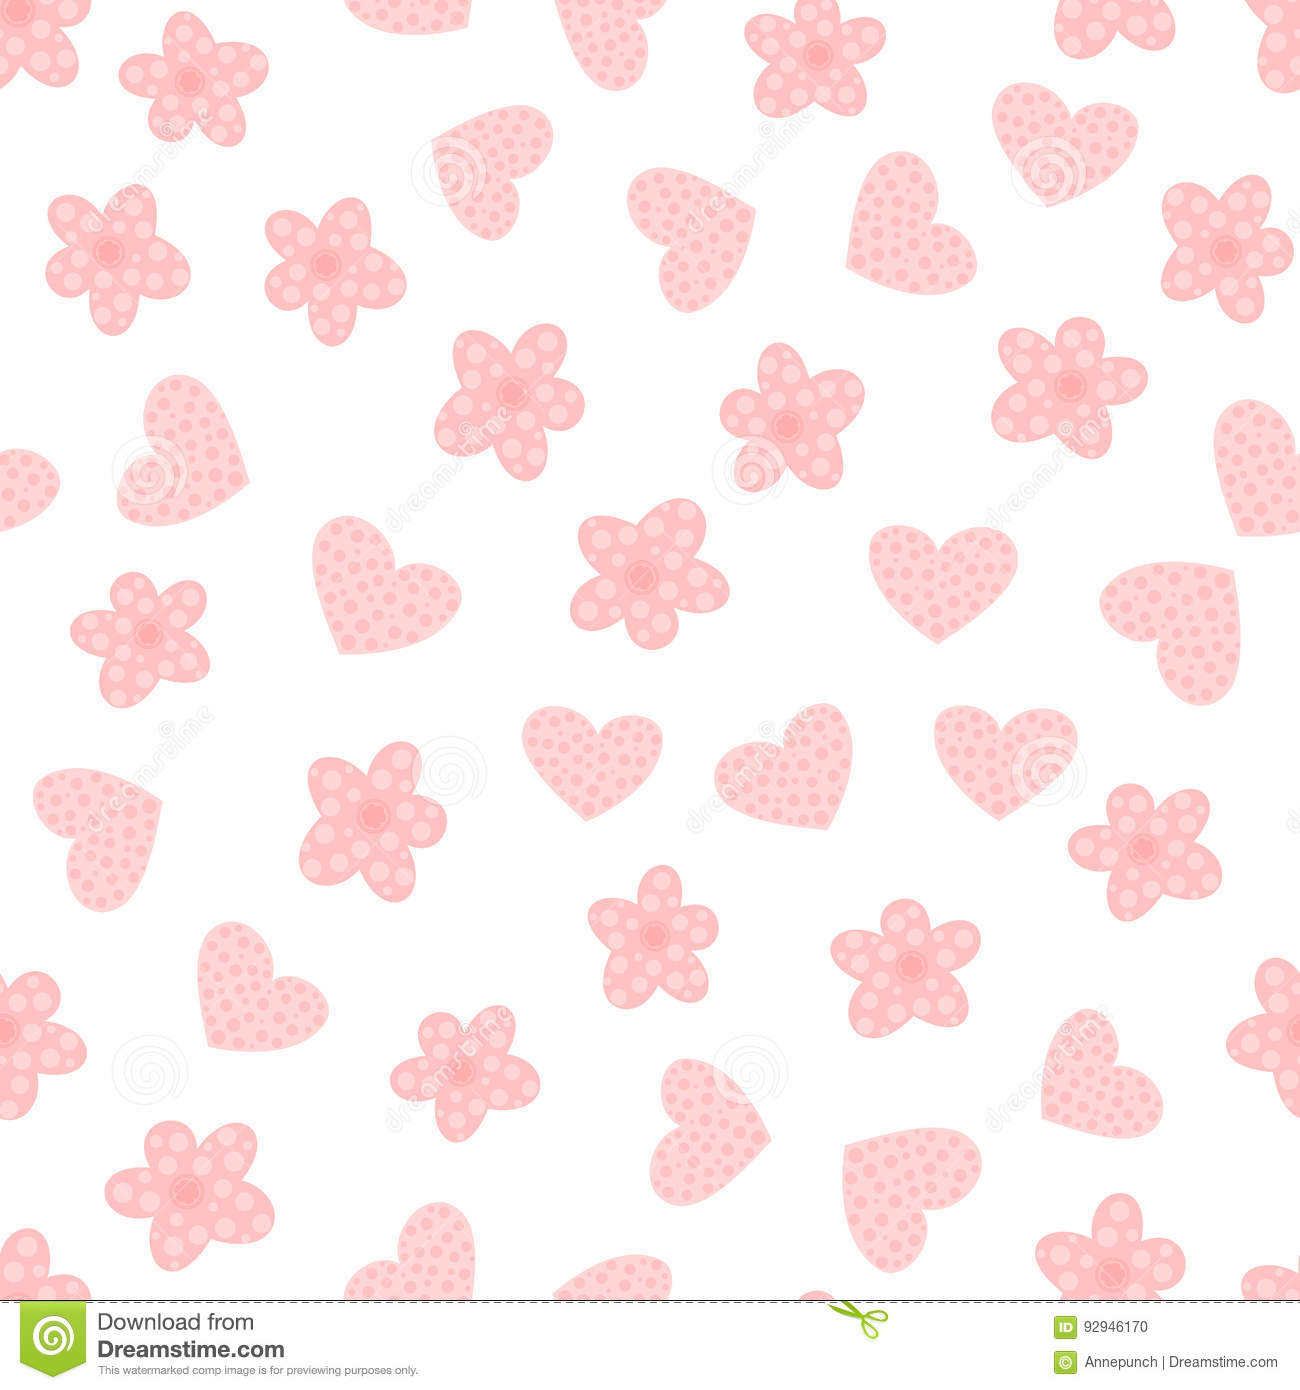 Download Cartoon Flowers And Hearts Cute Seamless Pattern Stock Vector